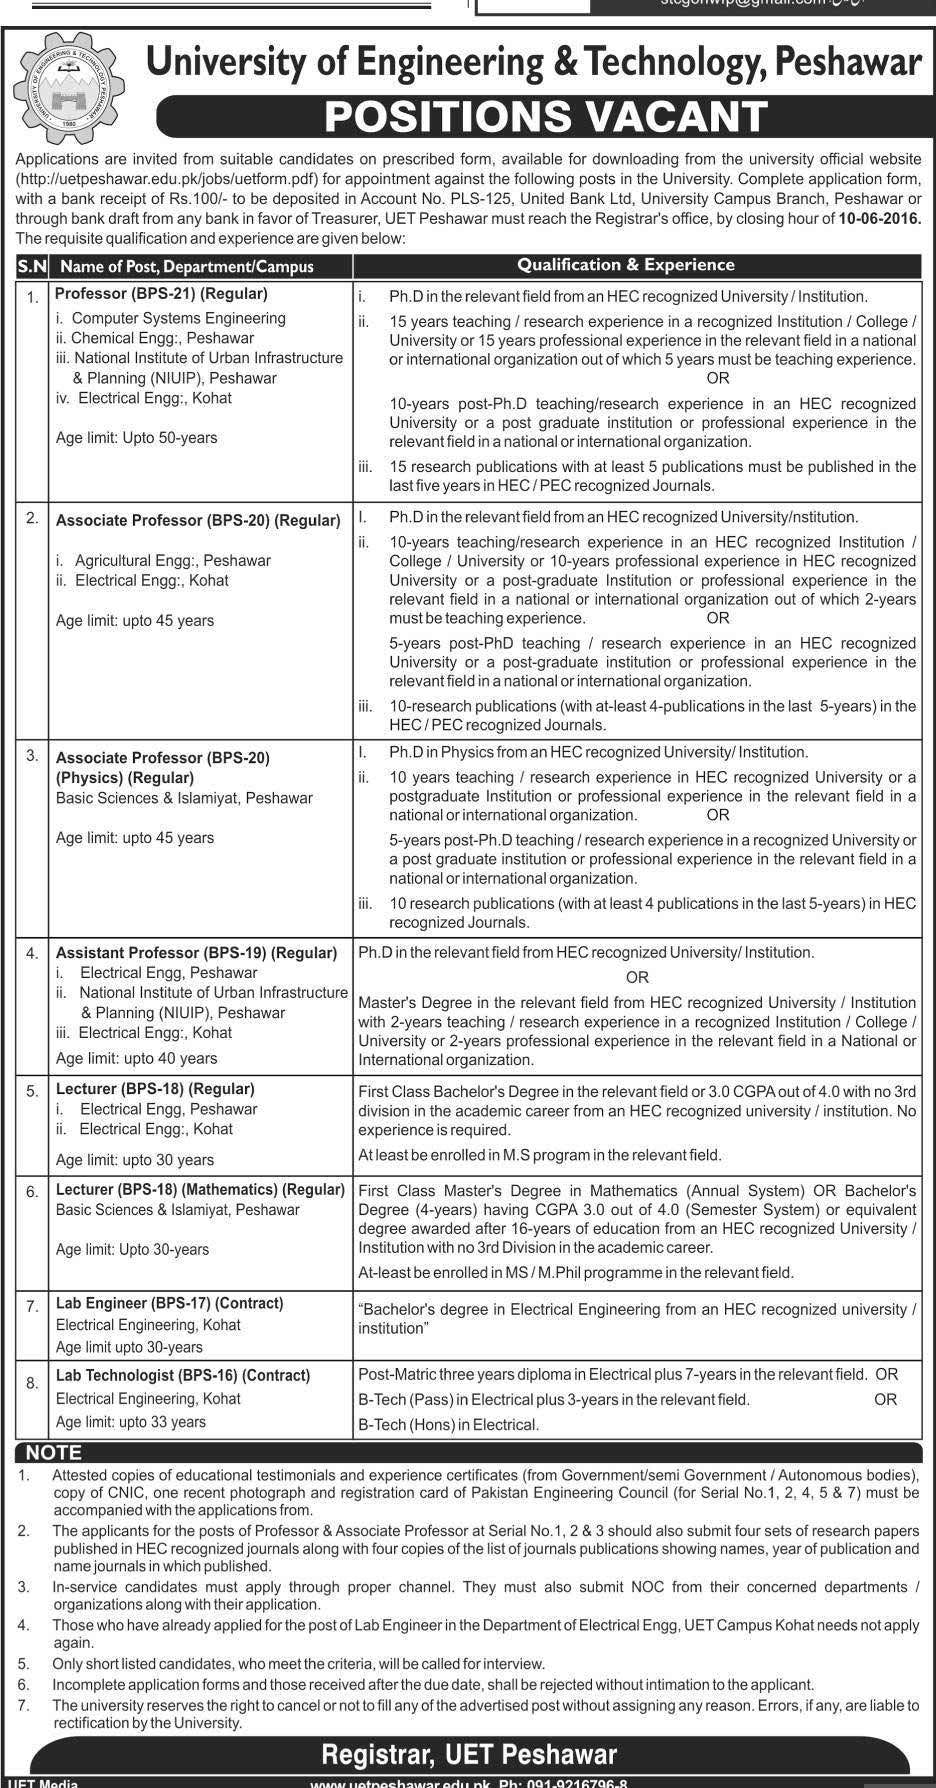 University of Engineering and Technology Peshawar Jobs 2016